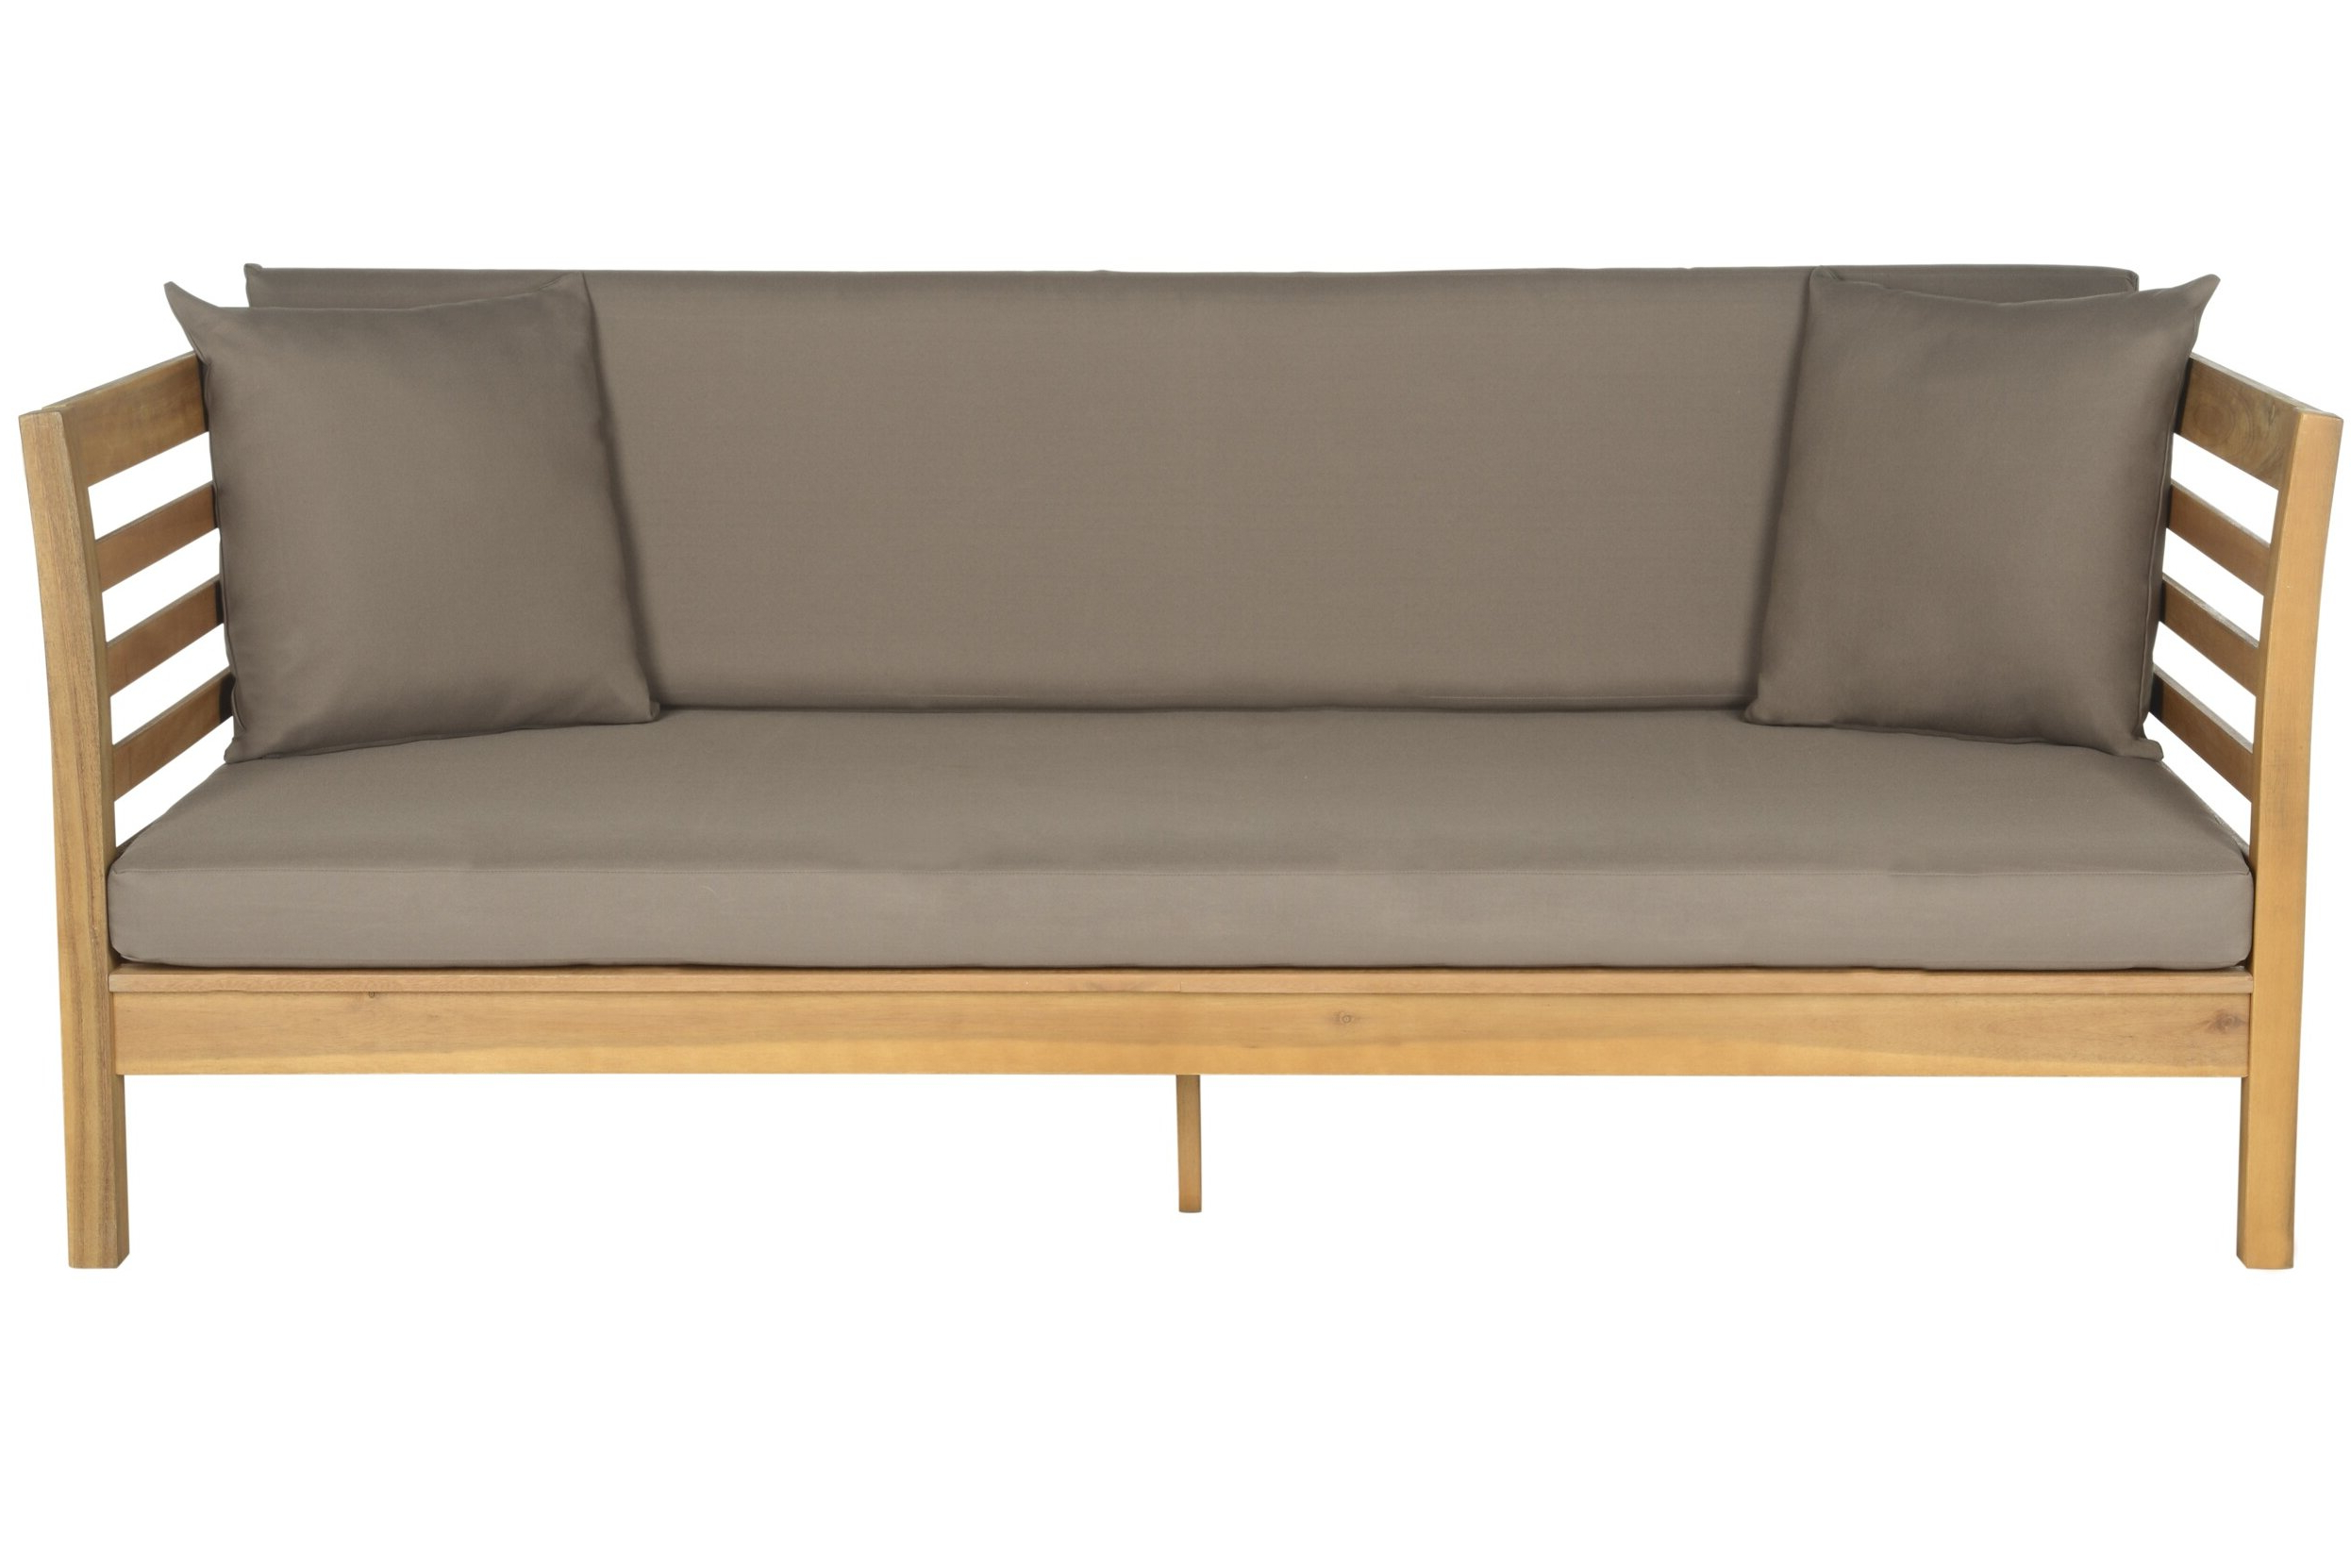 Zeman Ultra Comfortable Upholstered Anodized Aluminum Loveseats With Cushion In Most Recently Released Beachcrest Home Bodine Patio Daybed With Cushions (View 20 of 25)